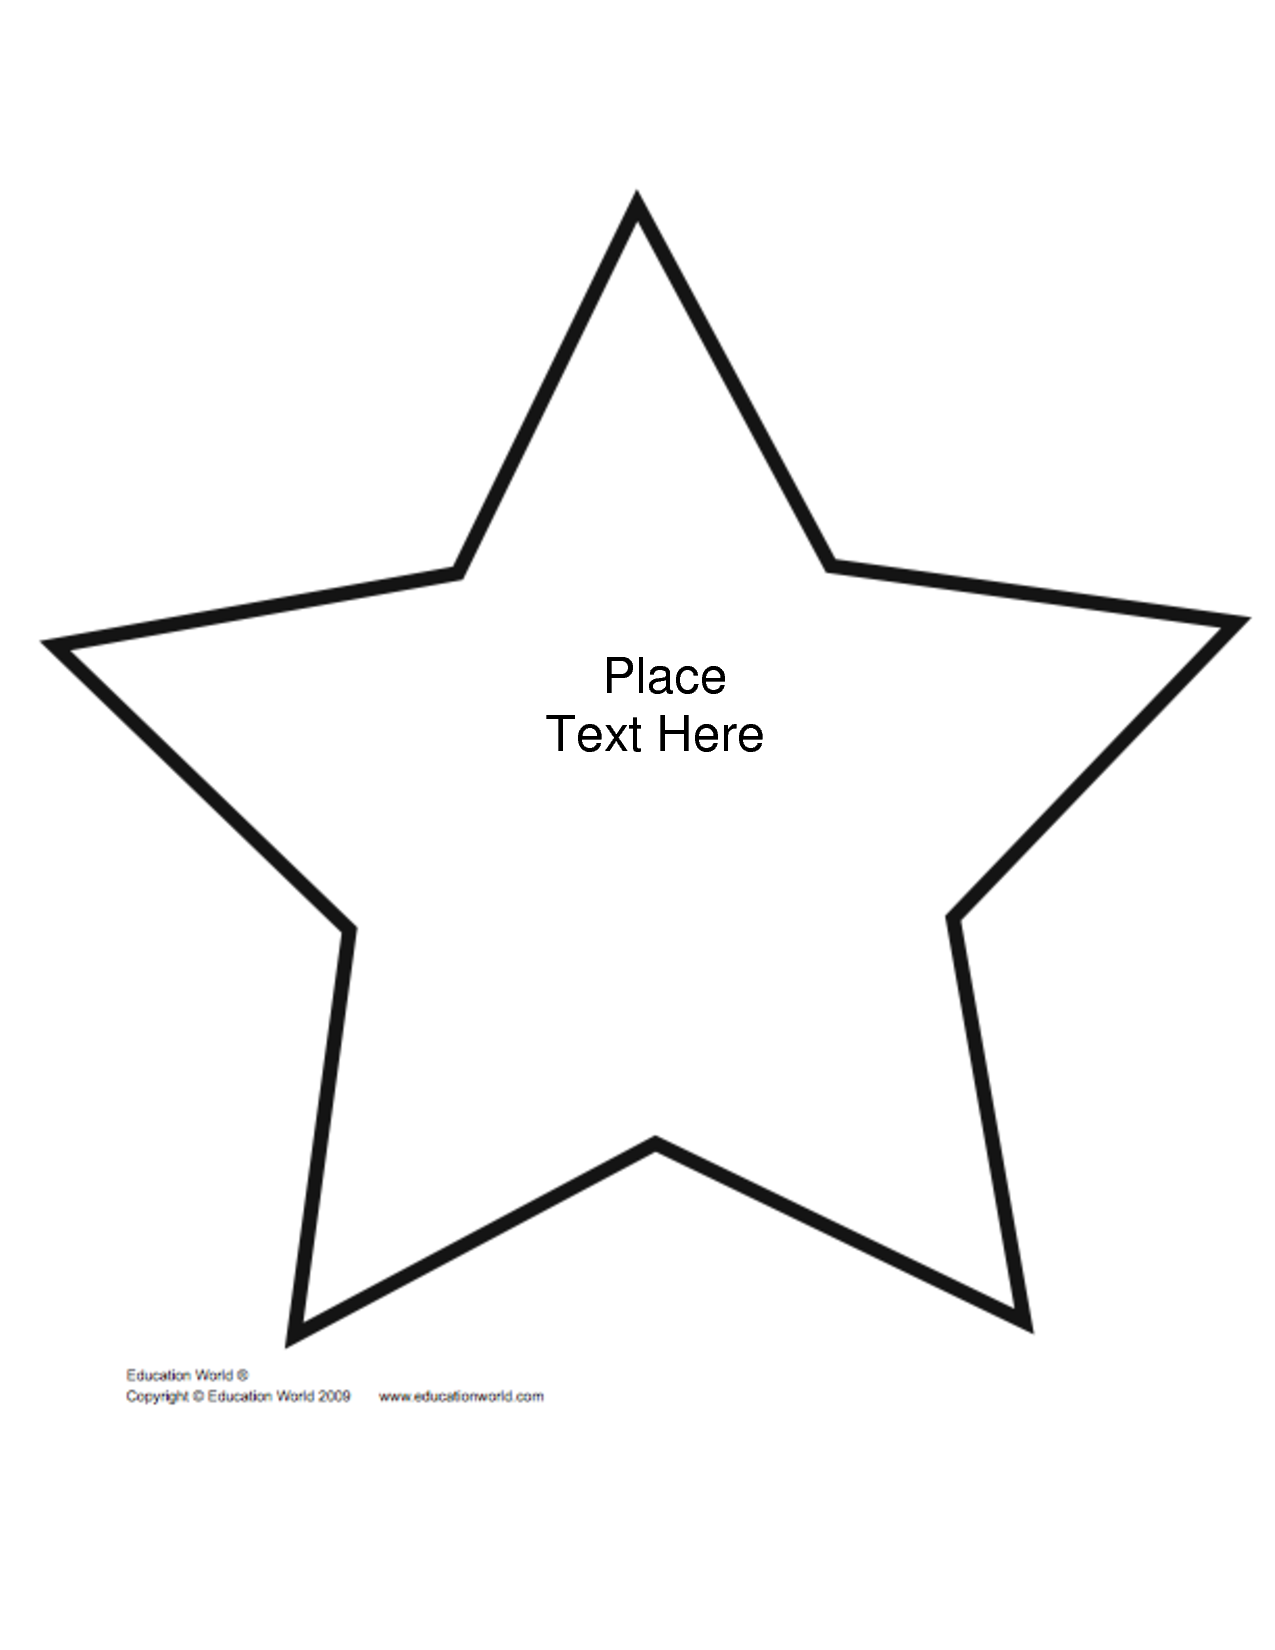 7 Images of Shape Star Template Printable